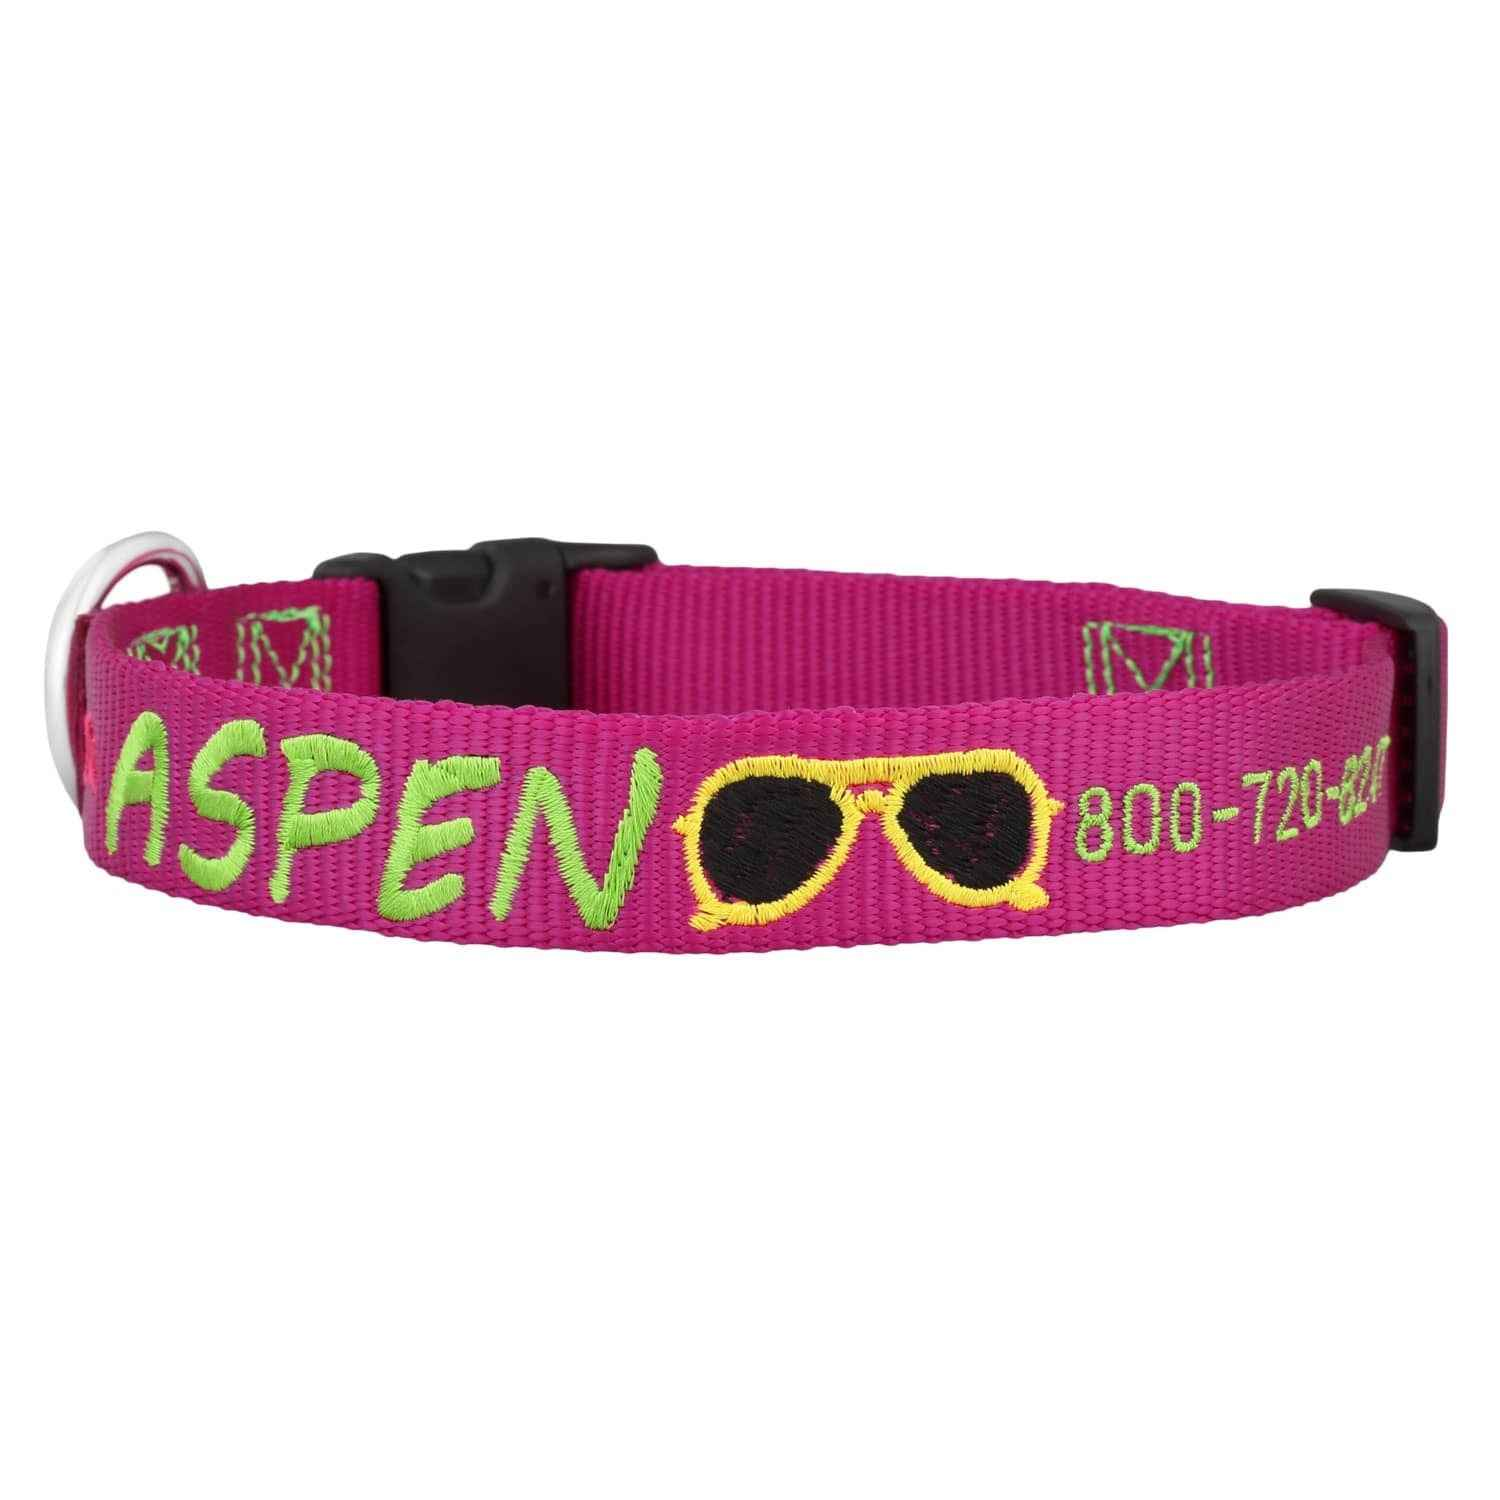 Sunshine Embroidered Dog Collar Raspberry with Lime Green - Sunglasses